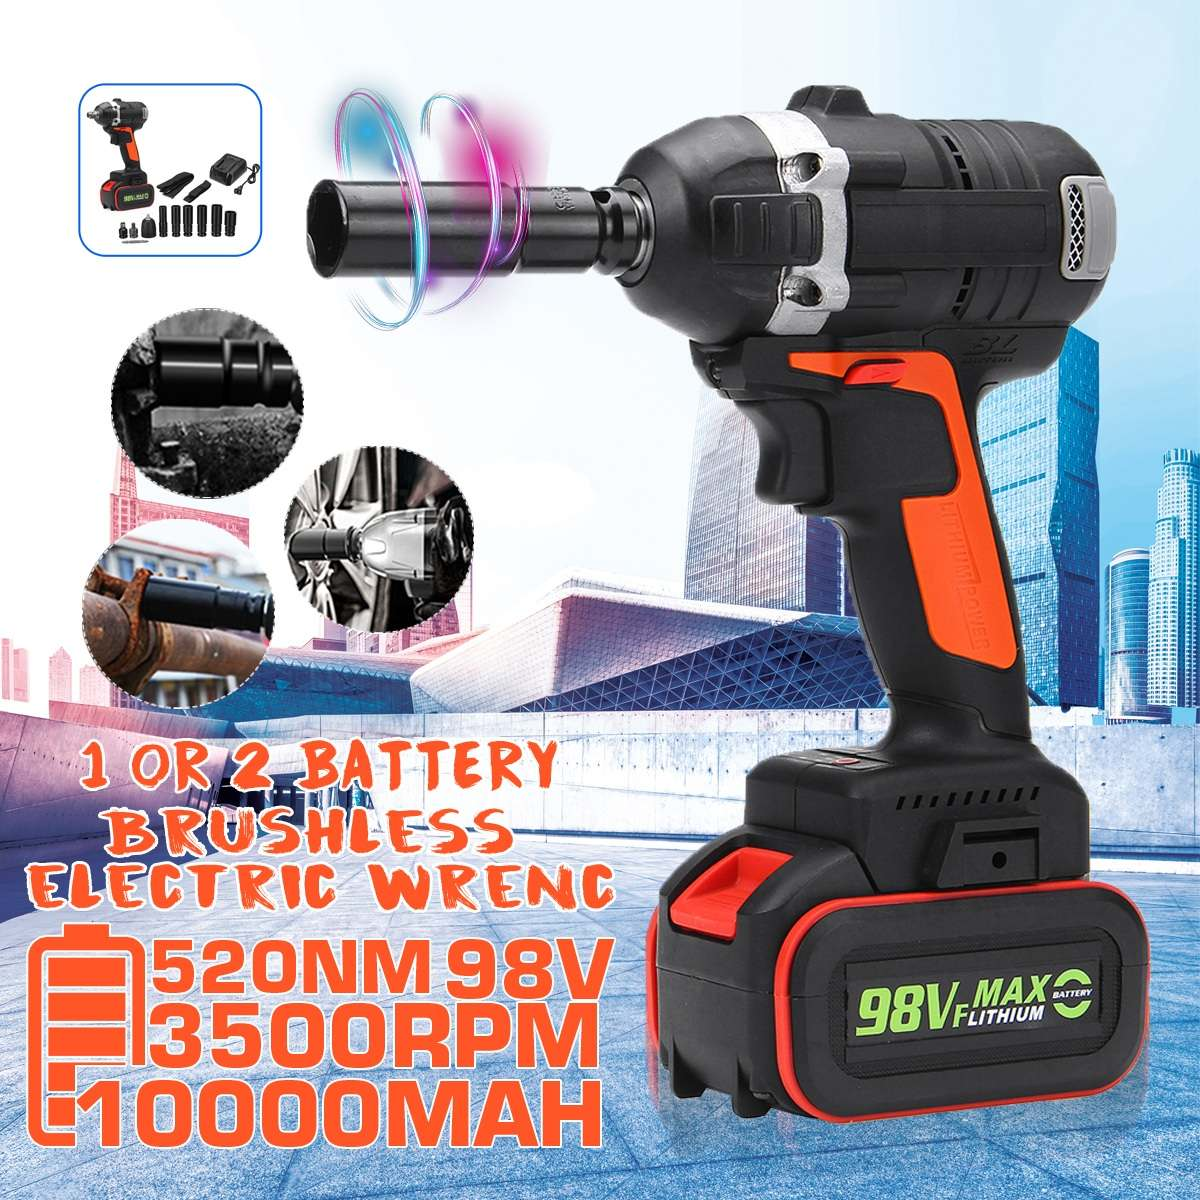 98V 520Nm 3500rpm 2 In 1 Brushless Cordless Wrench Electric Socket Impact Wrench 10000mah Lithium-lon Battery Power Tools Kit